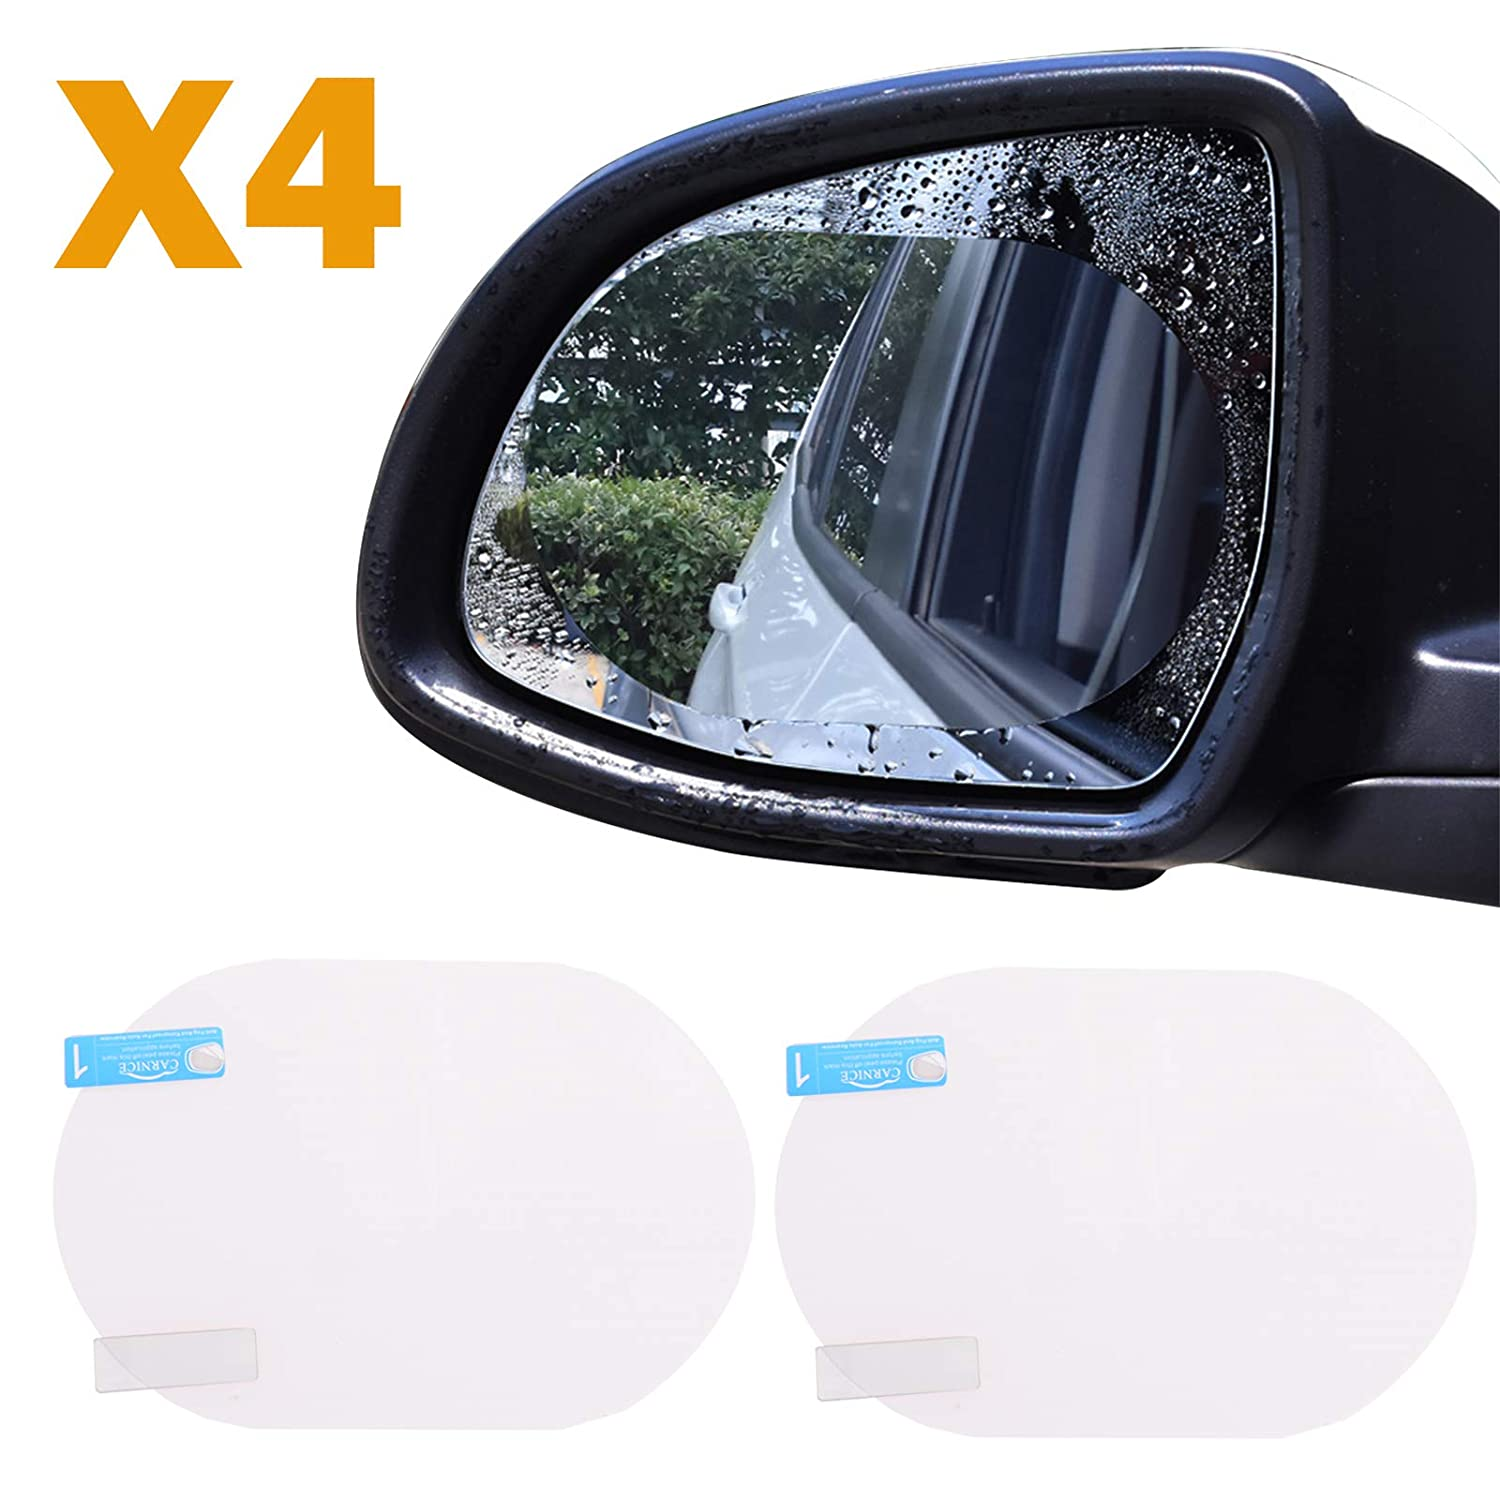 Voilamart Car Rearview Mirror Film 2pcs HD Clear Rainproof Waterproof Anti-Fog Mirror Protector Universal Car Truck Bus Anti Mist Anti Rain Soft Film Oval